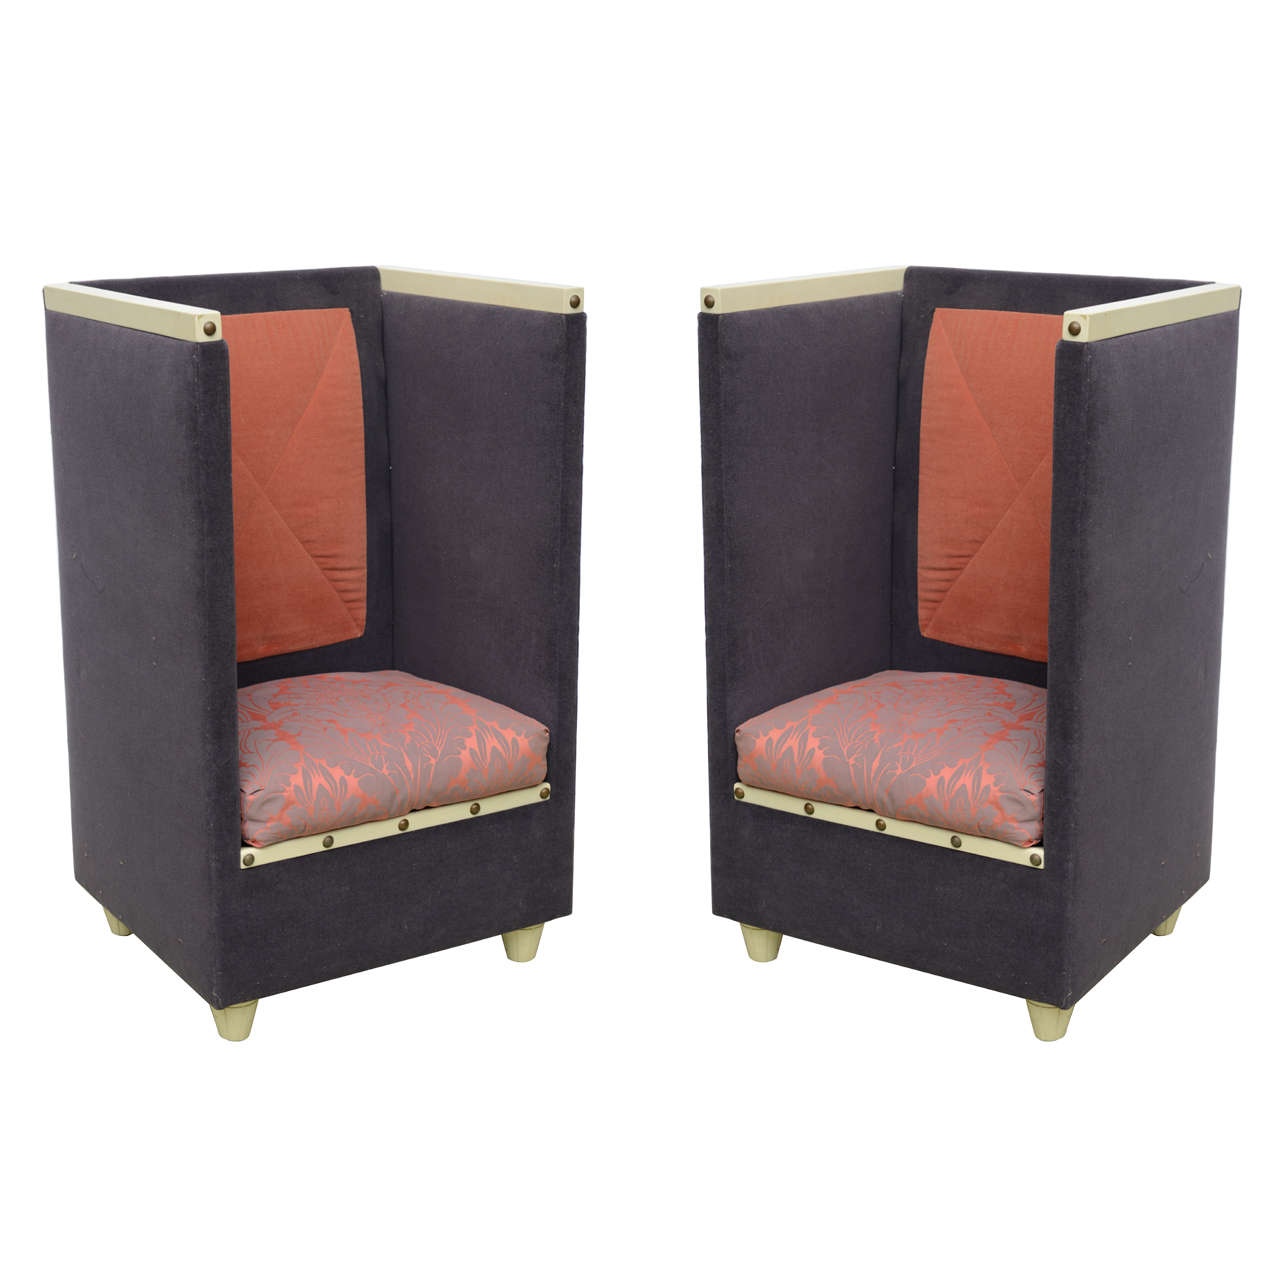 Iconic Modern Furniture Limited Edition Pair Of Iconic Throne Chairs By Noted Artist